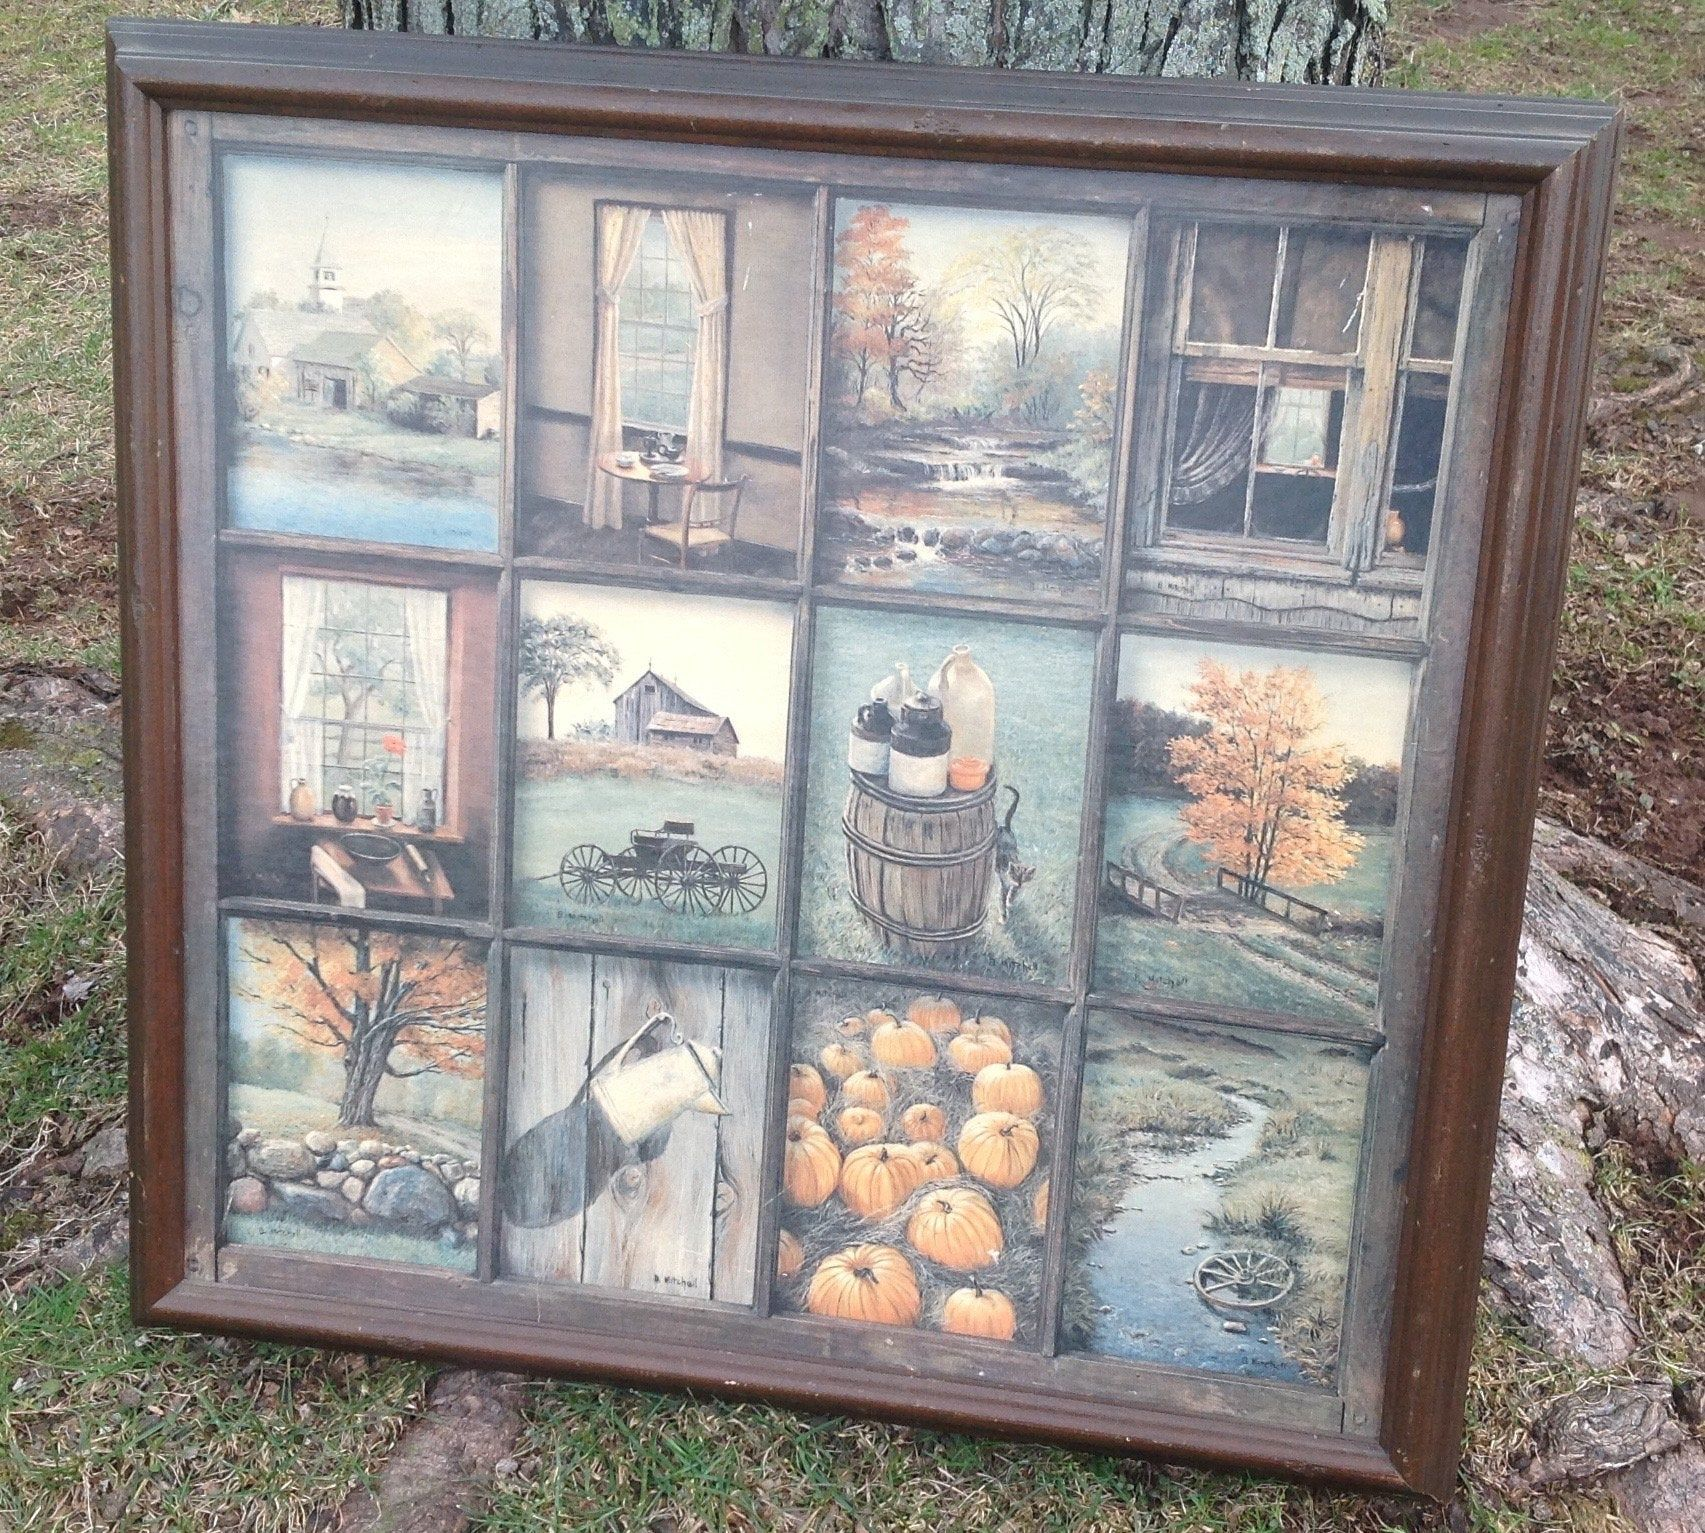 Vintage Window Pane Art B Mitchell Combination Painting Etsy Window Pane Art Framed Art Vintage Windows